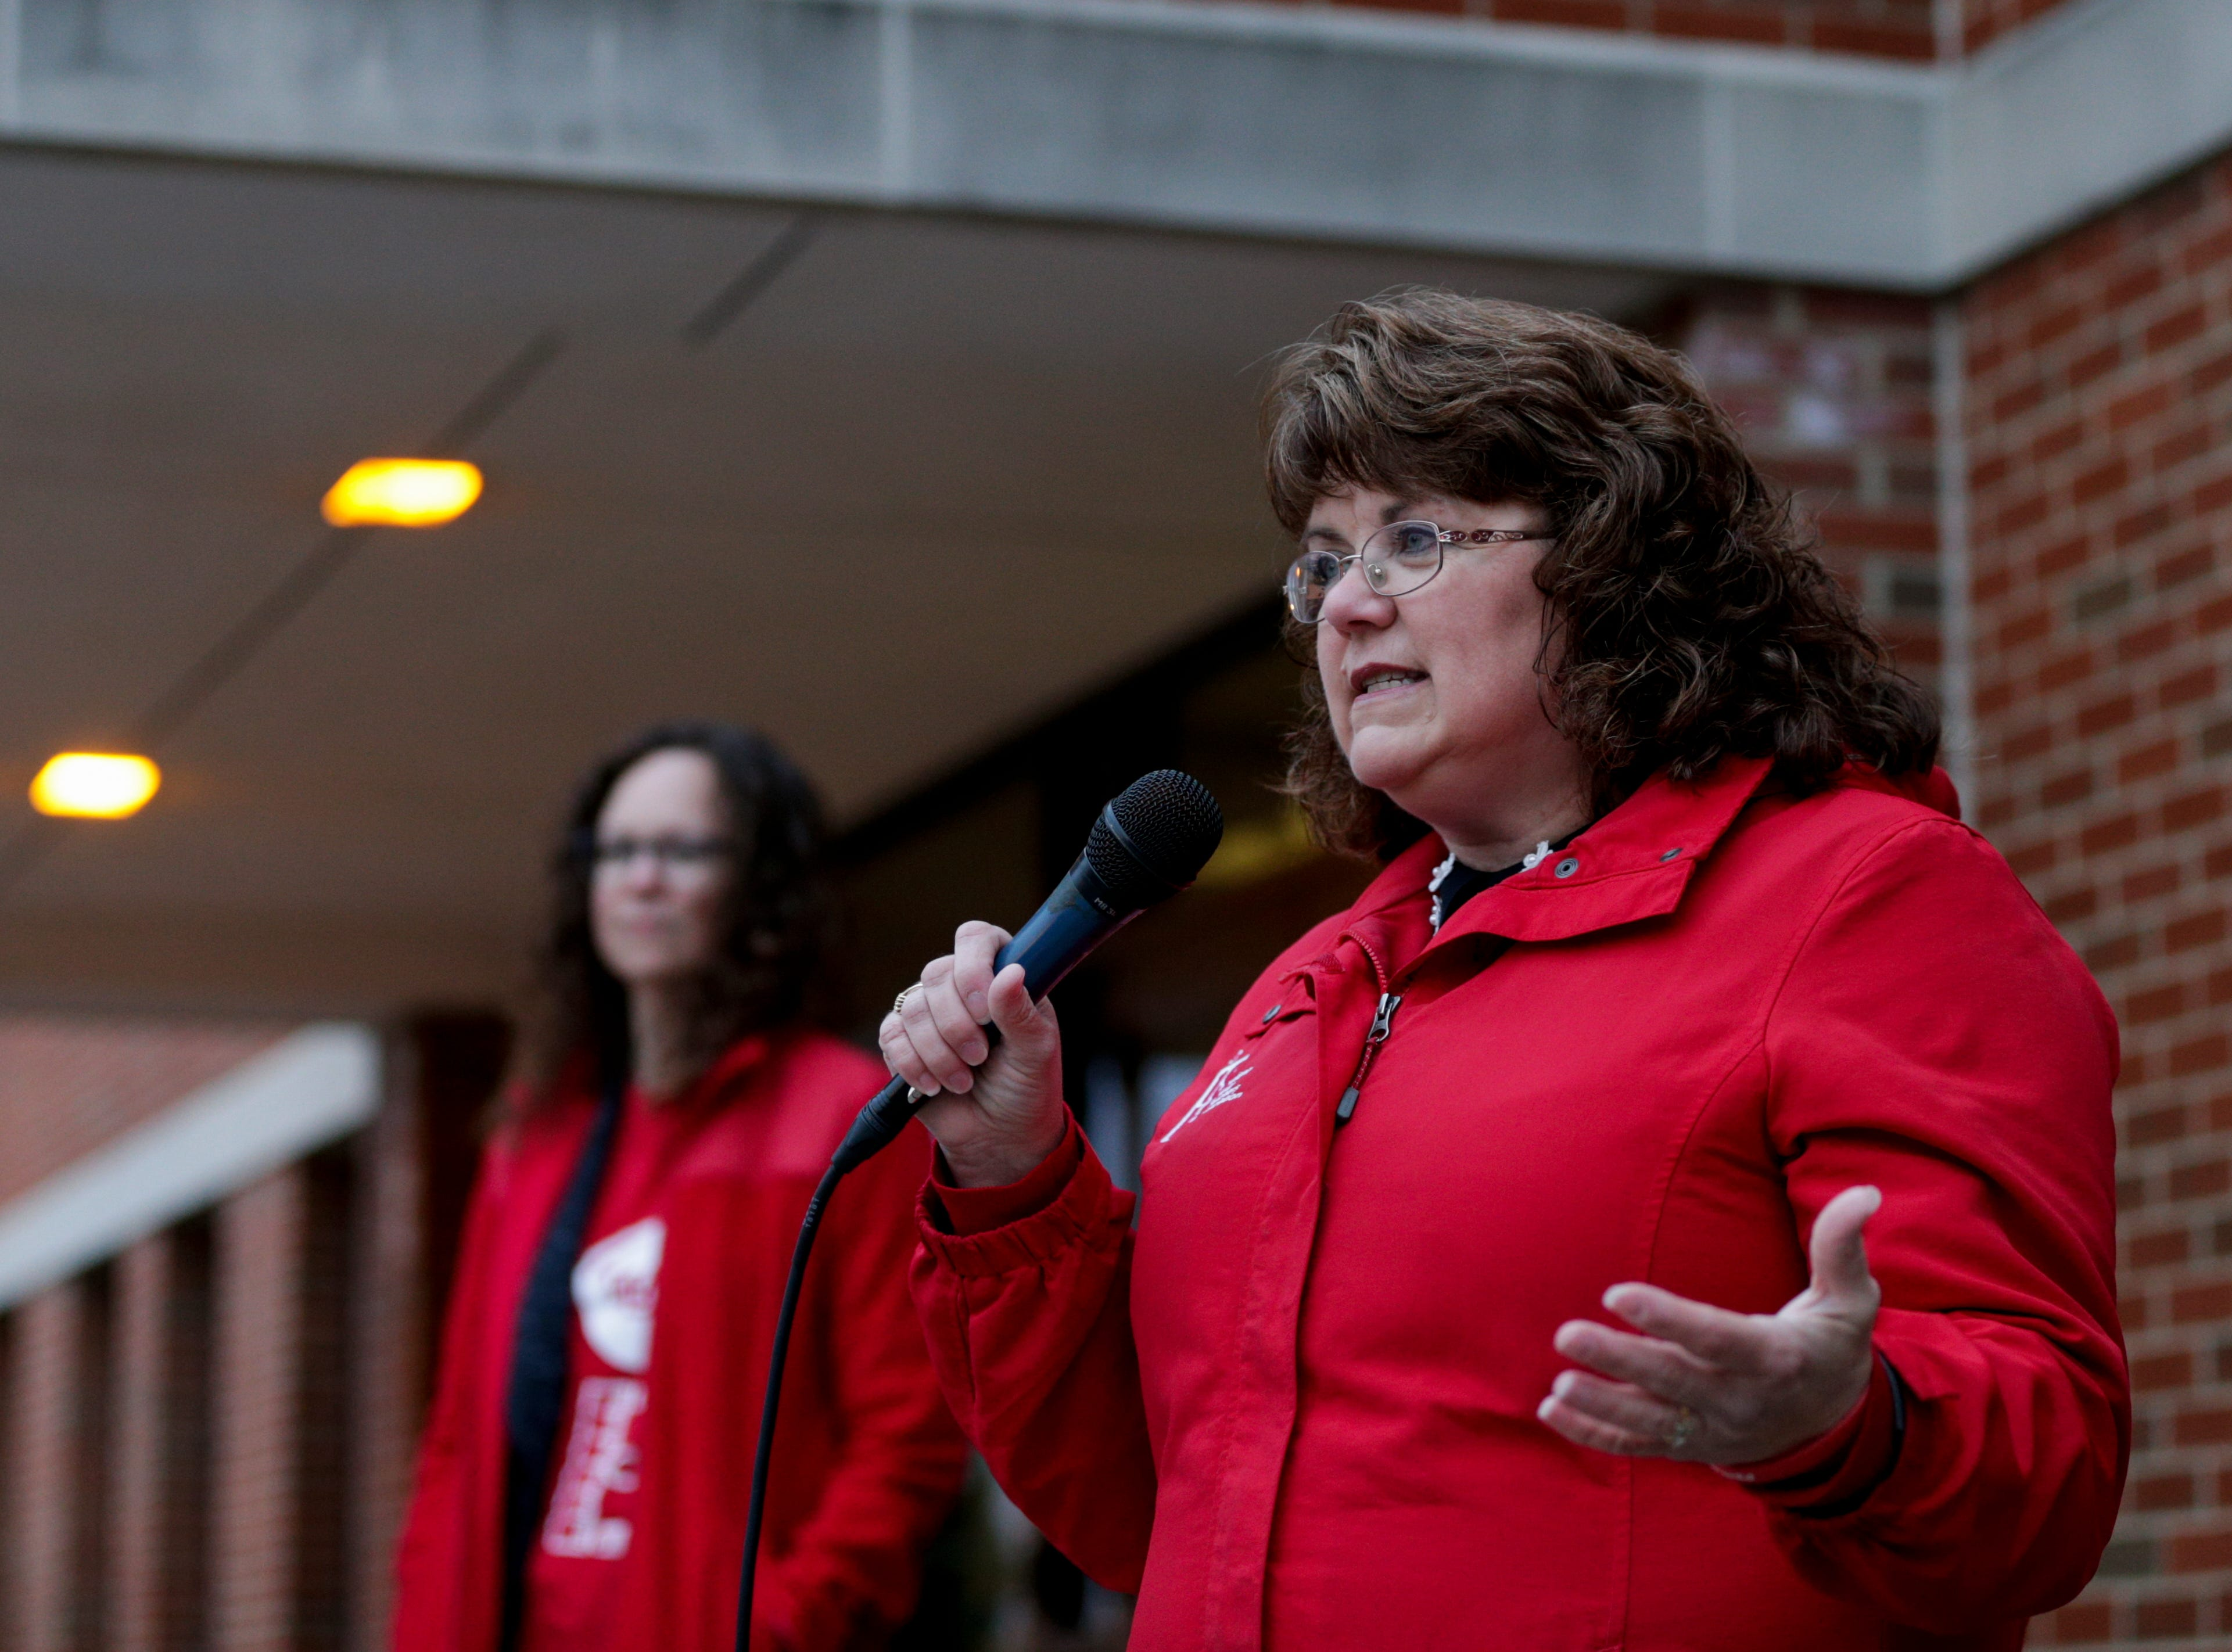 Teresa Meredith, Indiana state teachers association president, speaks to teachers and community members during a gathering outside of West Lafayette Jr./Sr. High School, Wednesday, April 10, 2019, in West Lafayette. Greater Lafayette teachers and community members gathered outside schools before walking in to demand teacher salary raises.(Nikos Frazier   Journal & Courier)